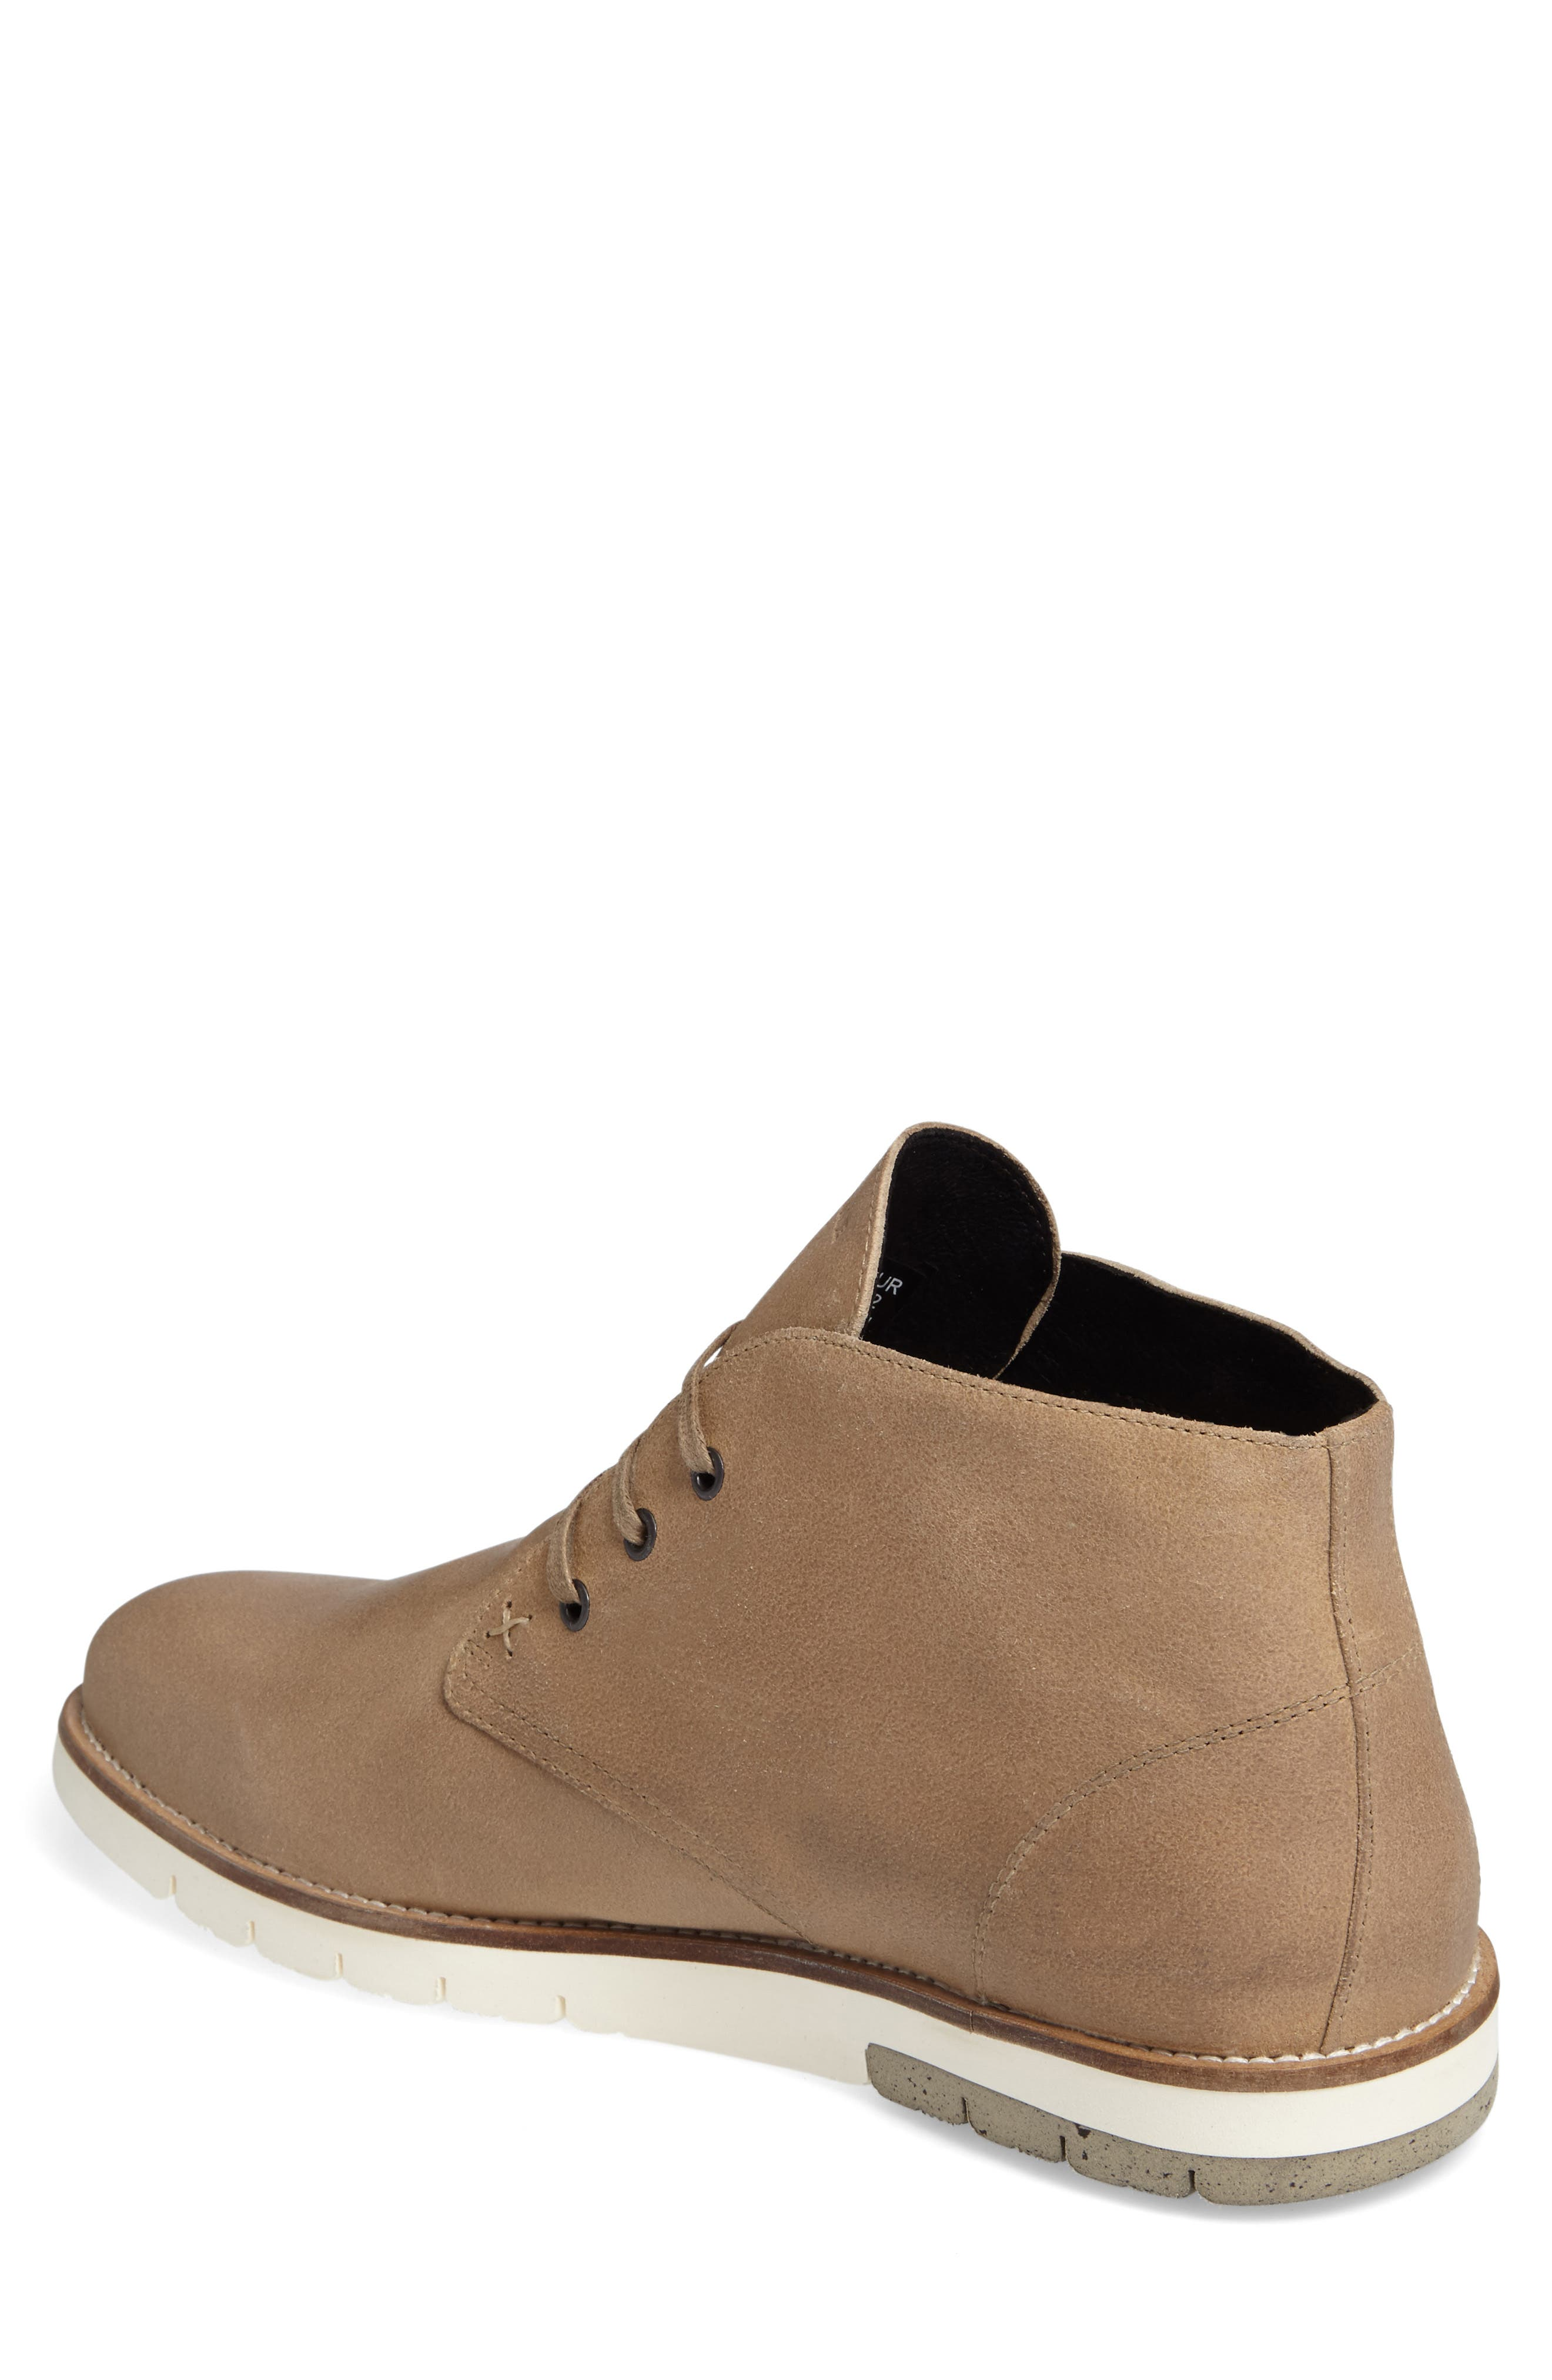 Gibson Chukka Boot,                             Alternate thumbnail 2, color,                             200